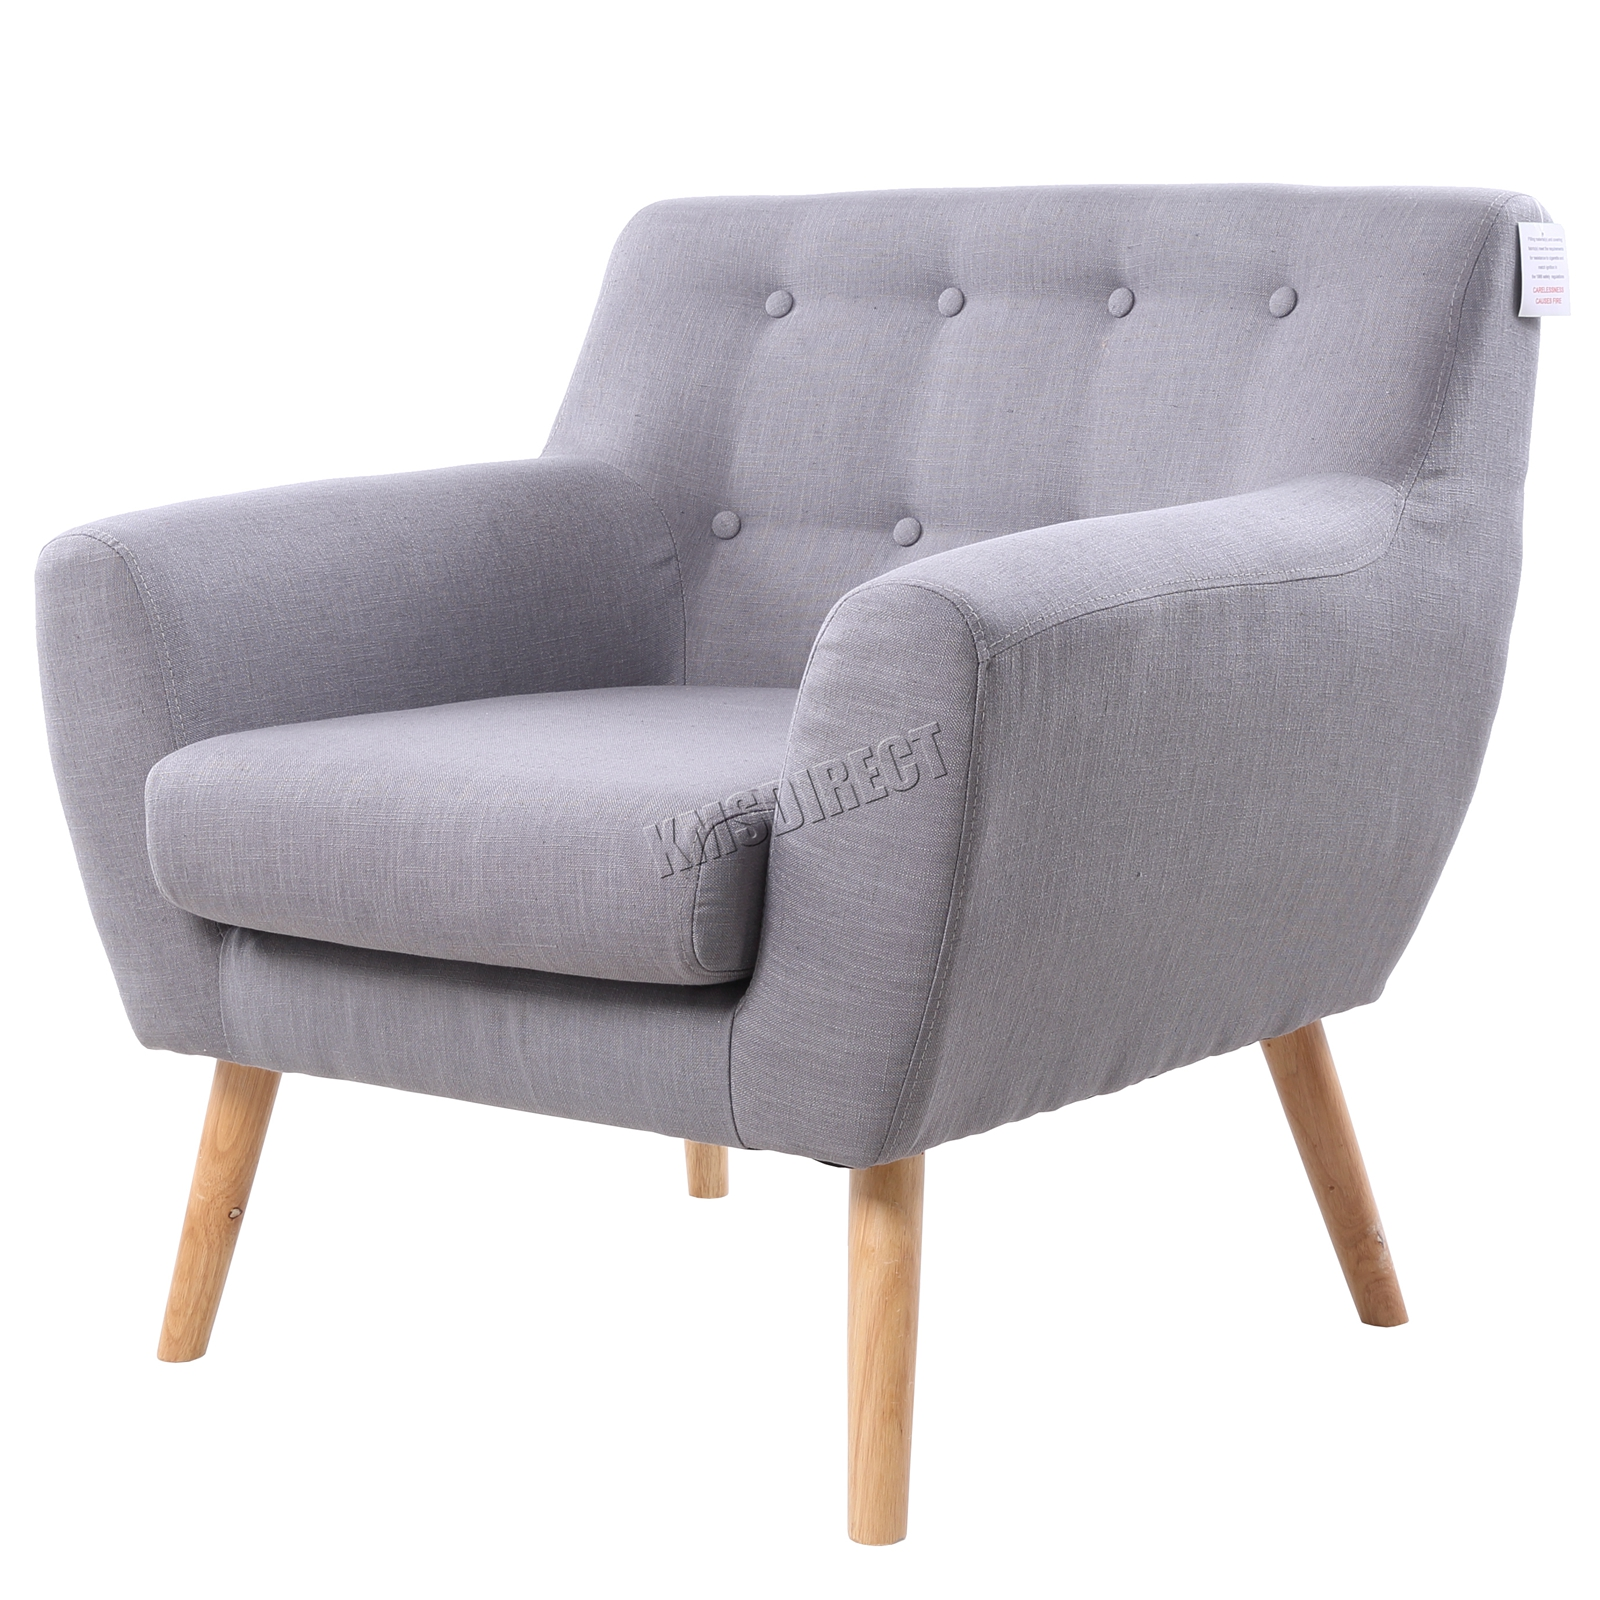 Foxhunter Linen Fabric 1 Single Seat Sofa Tub Armchair Dining Room Sssf 03 Grey 5055418321181 Ebay